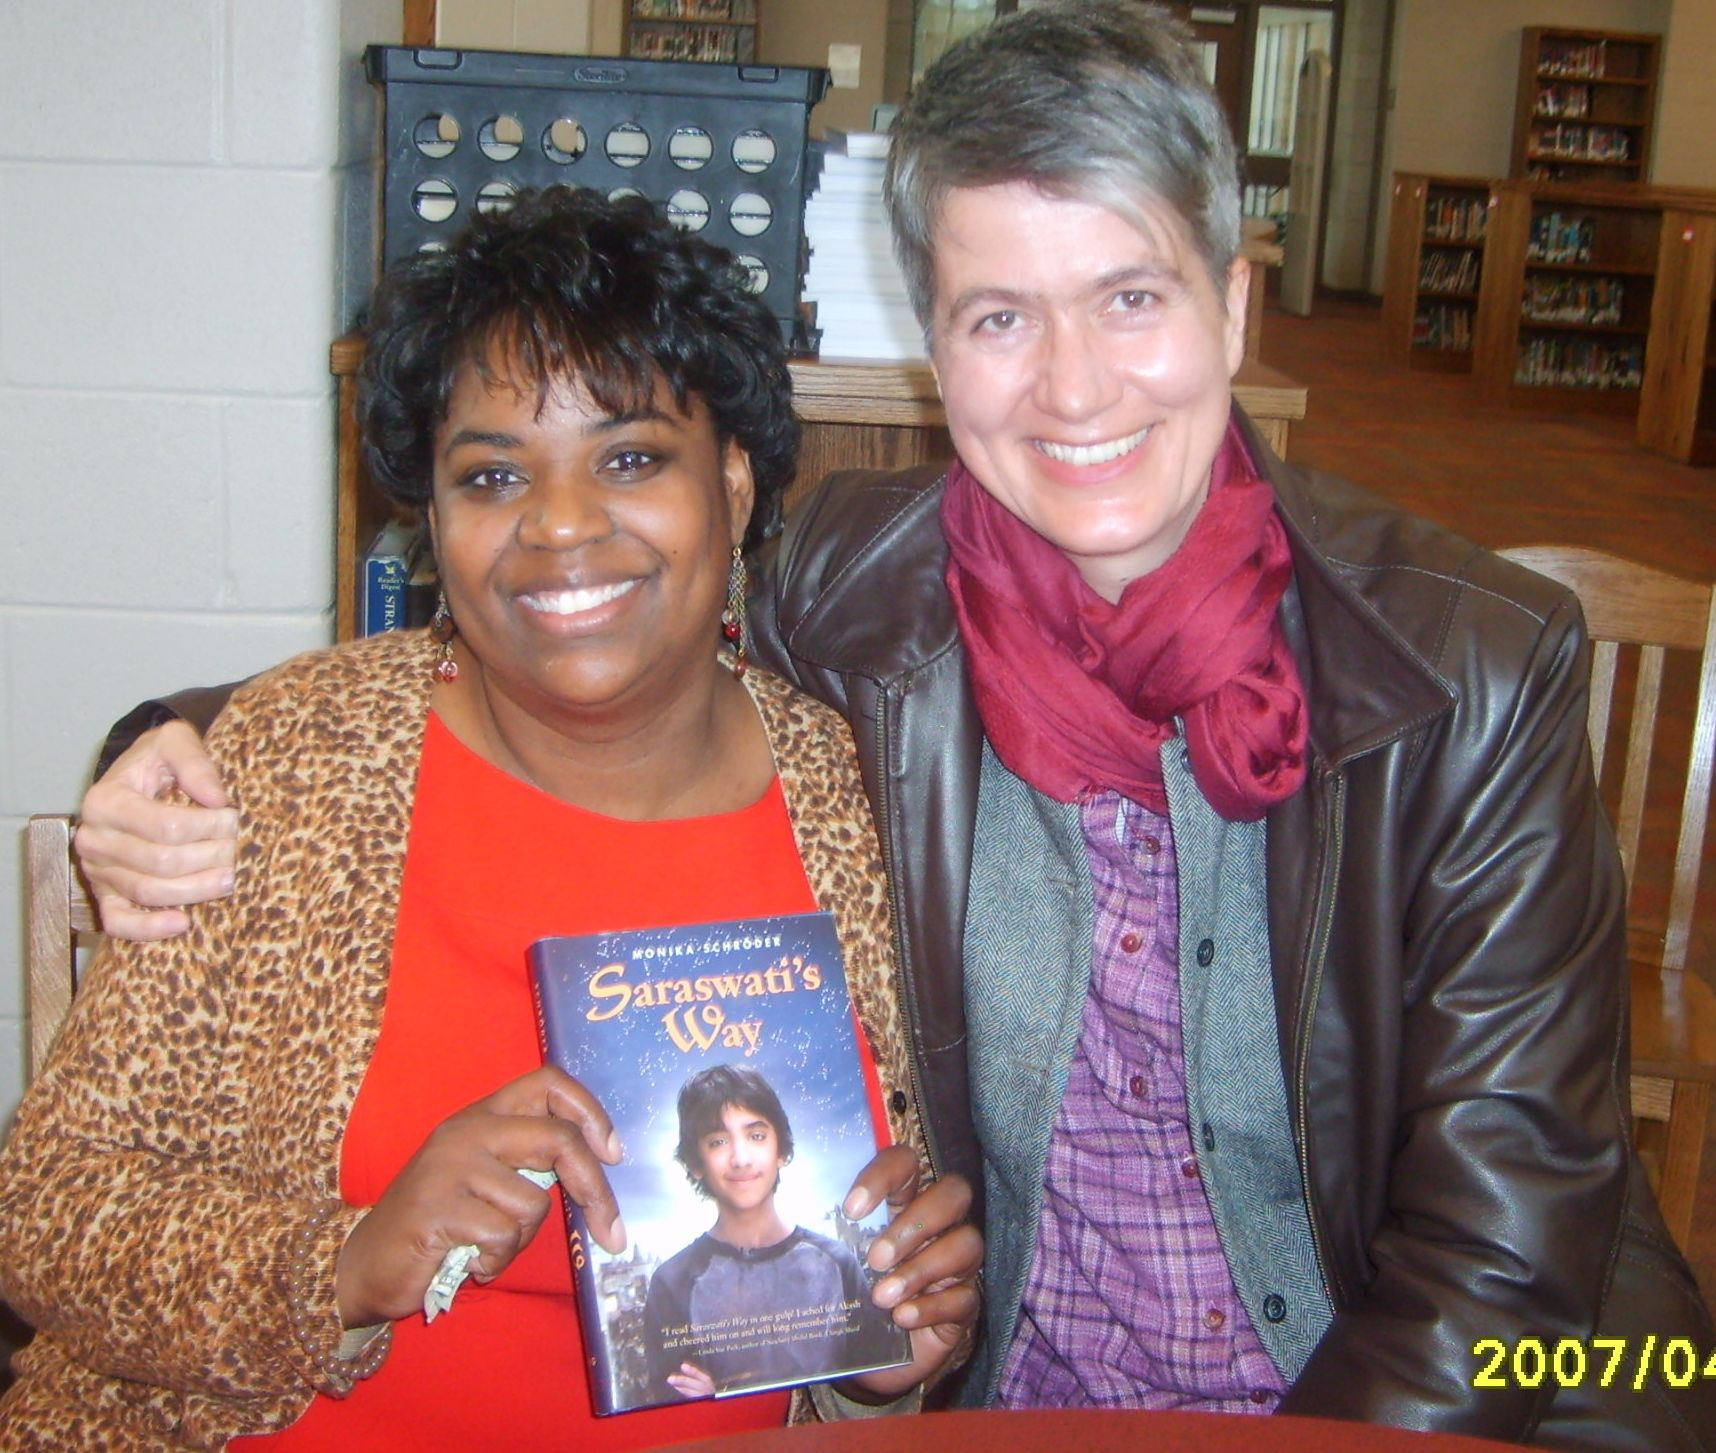 With the wonderful Kecia Hopper who invited me.